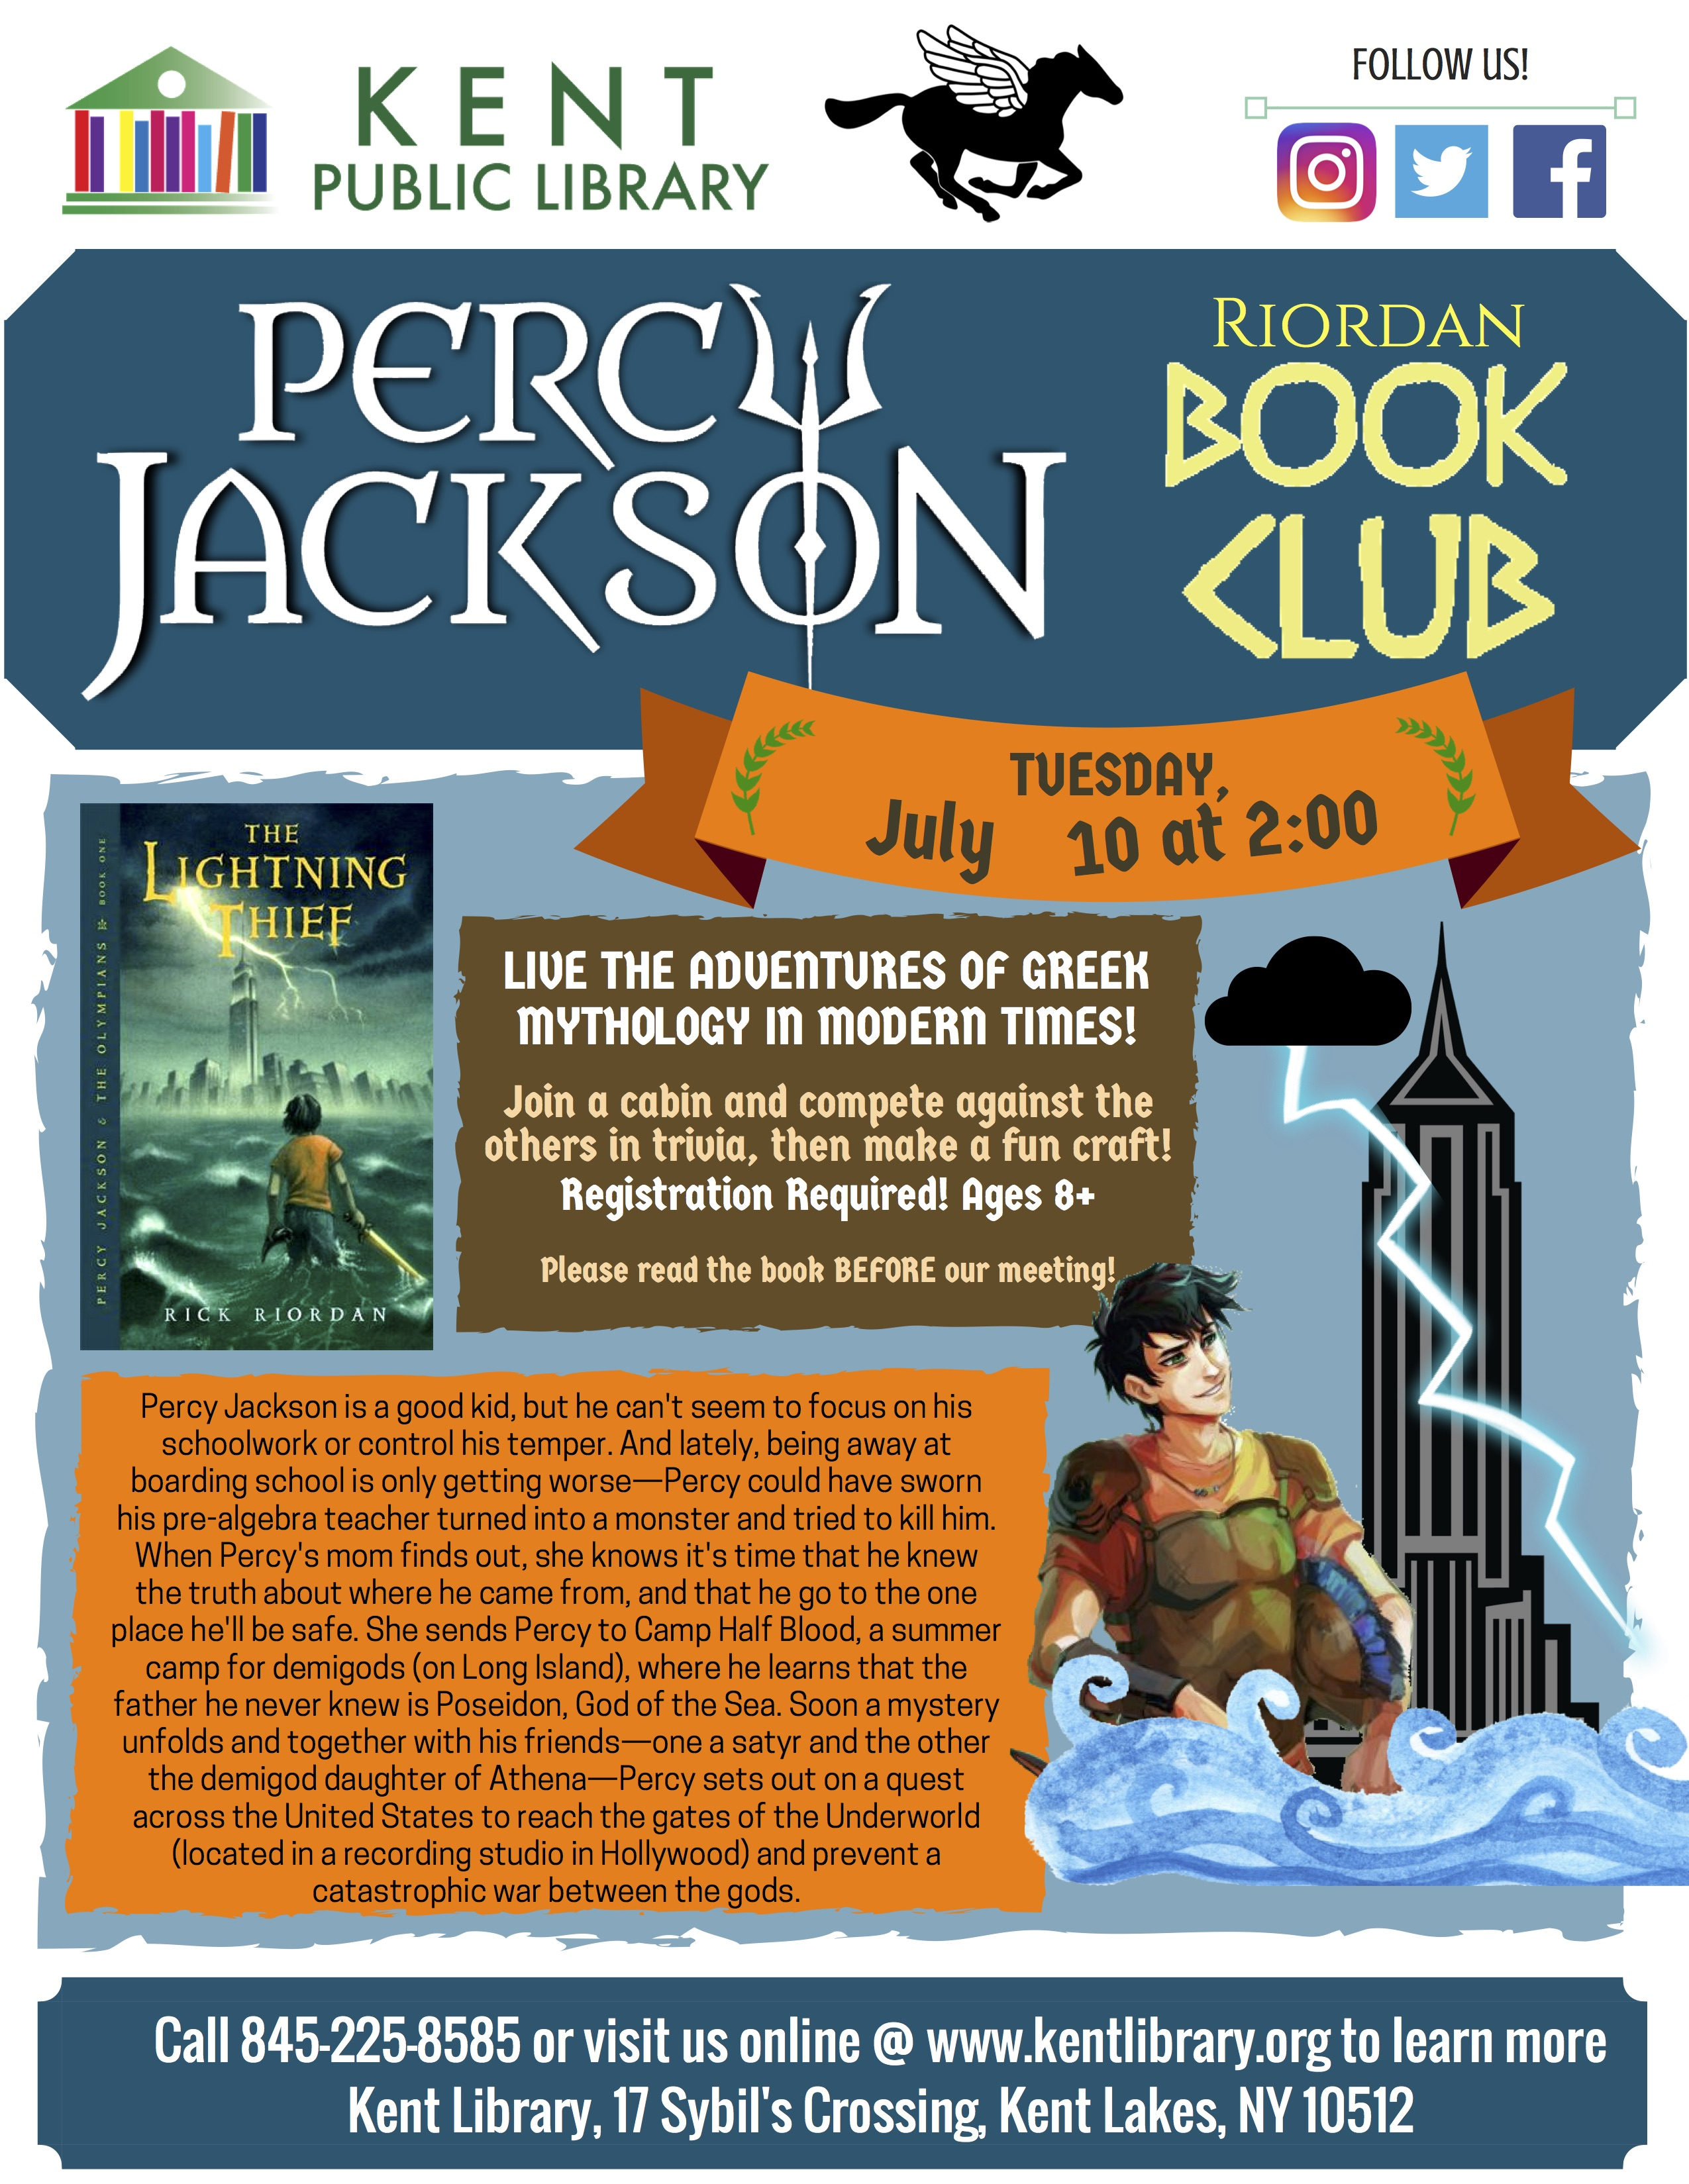 percy jackson book club starts again on tuesday july 10